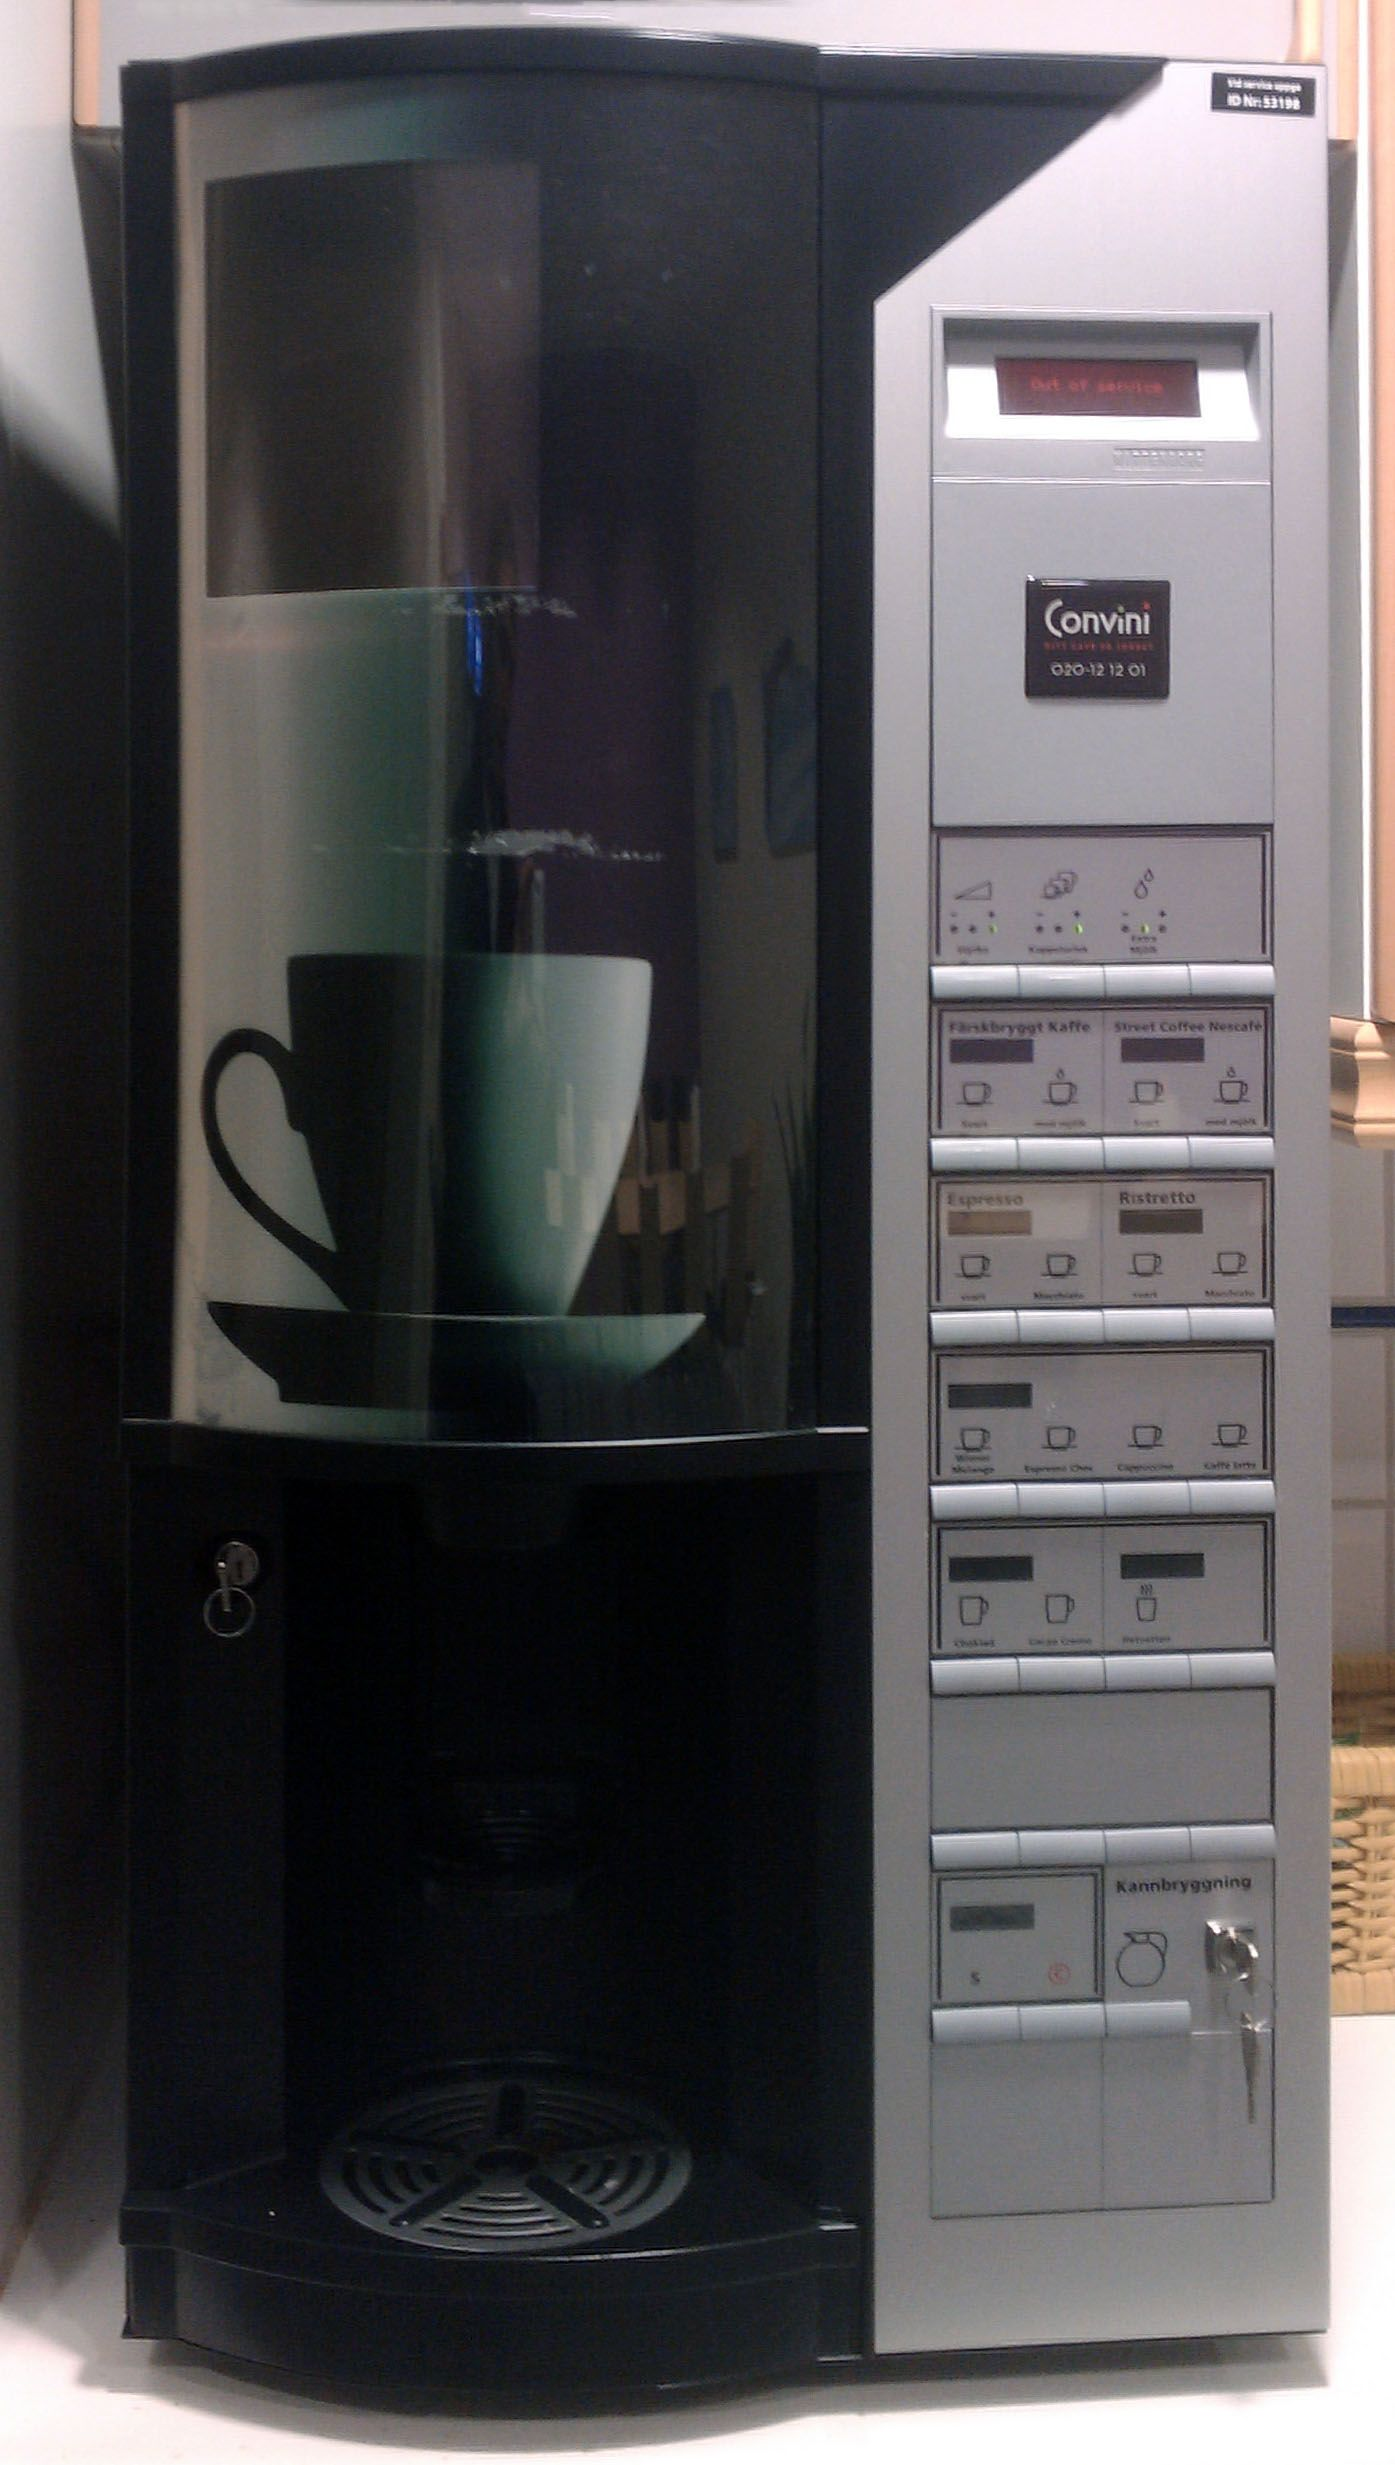 """coffee machine is """"out of service"""" when boiling"""